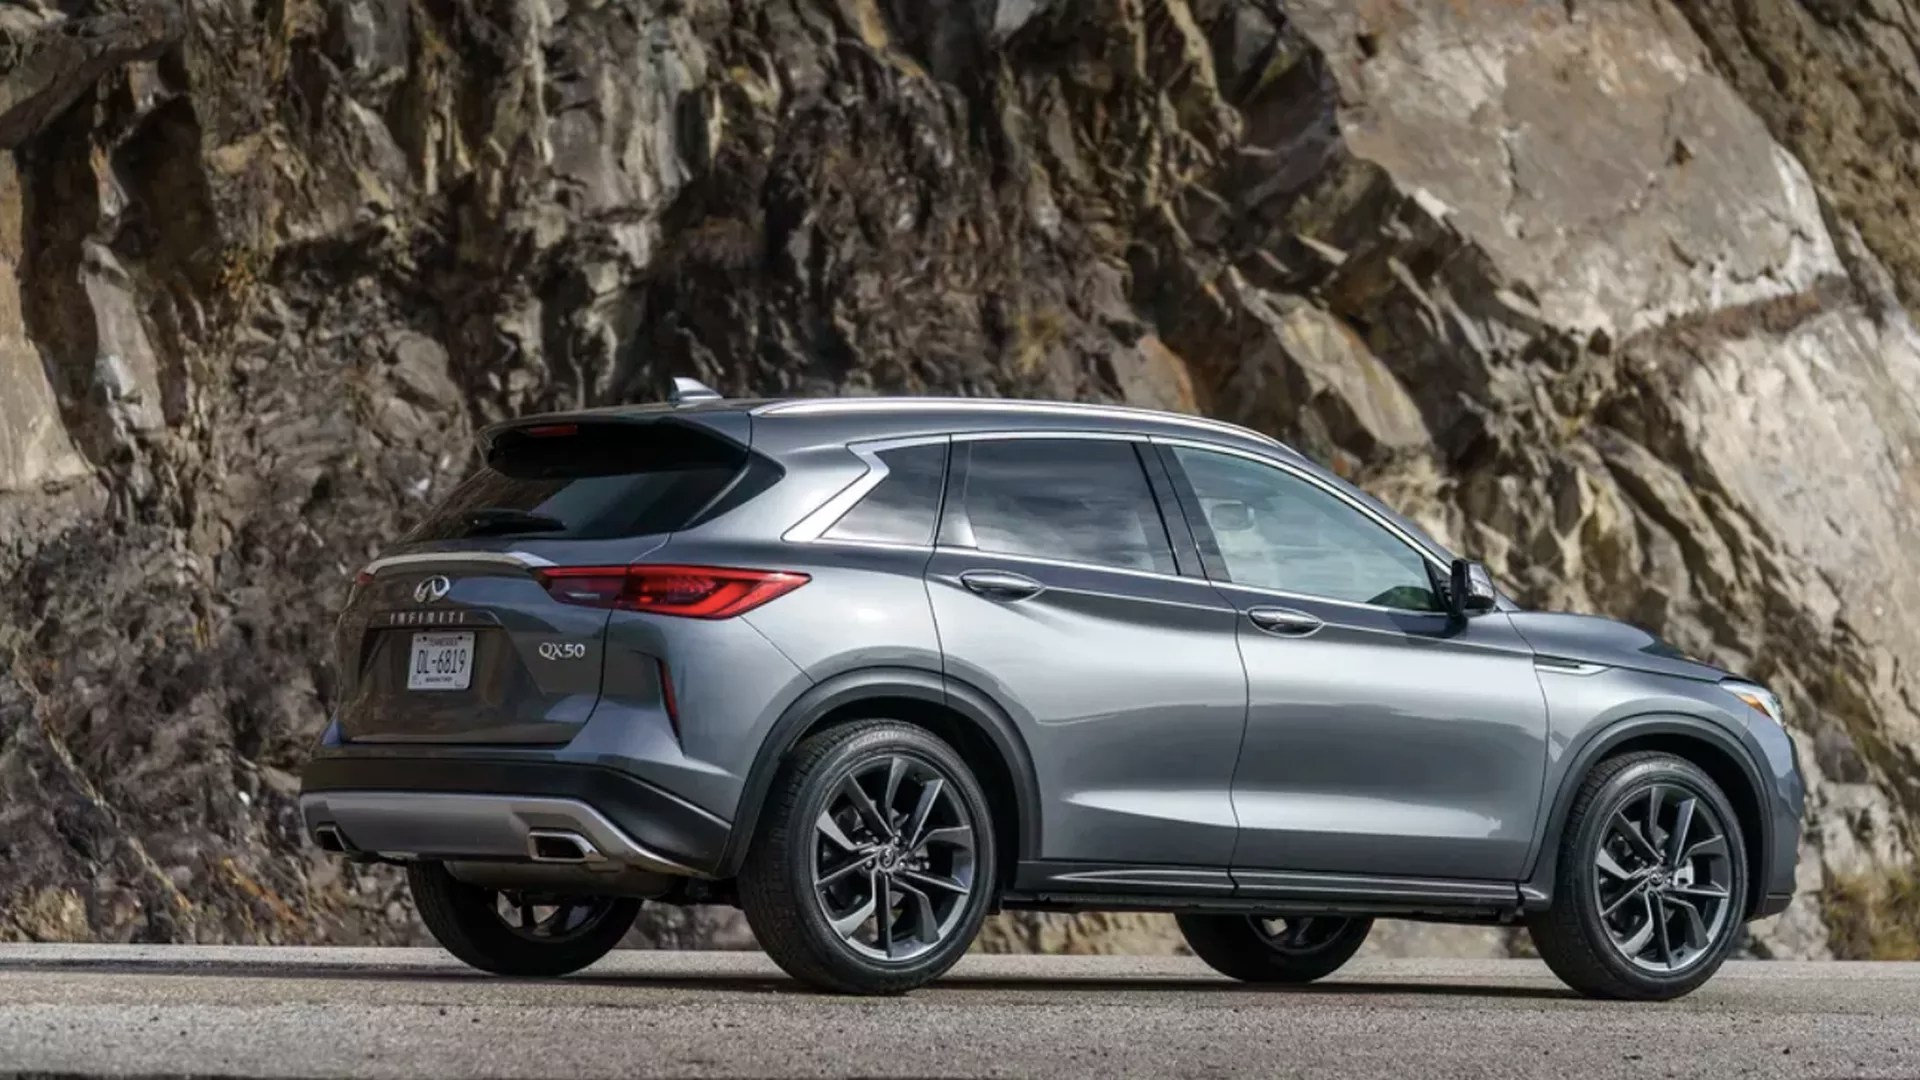 What we're driving: 2019 Infiniti Qx50 - Axios